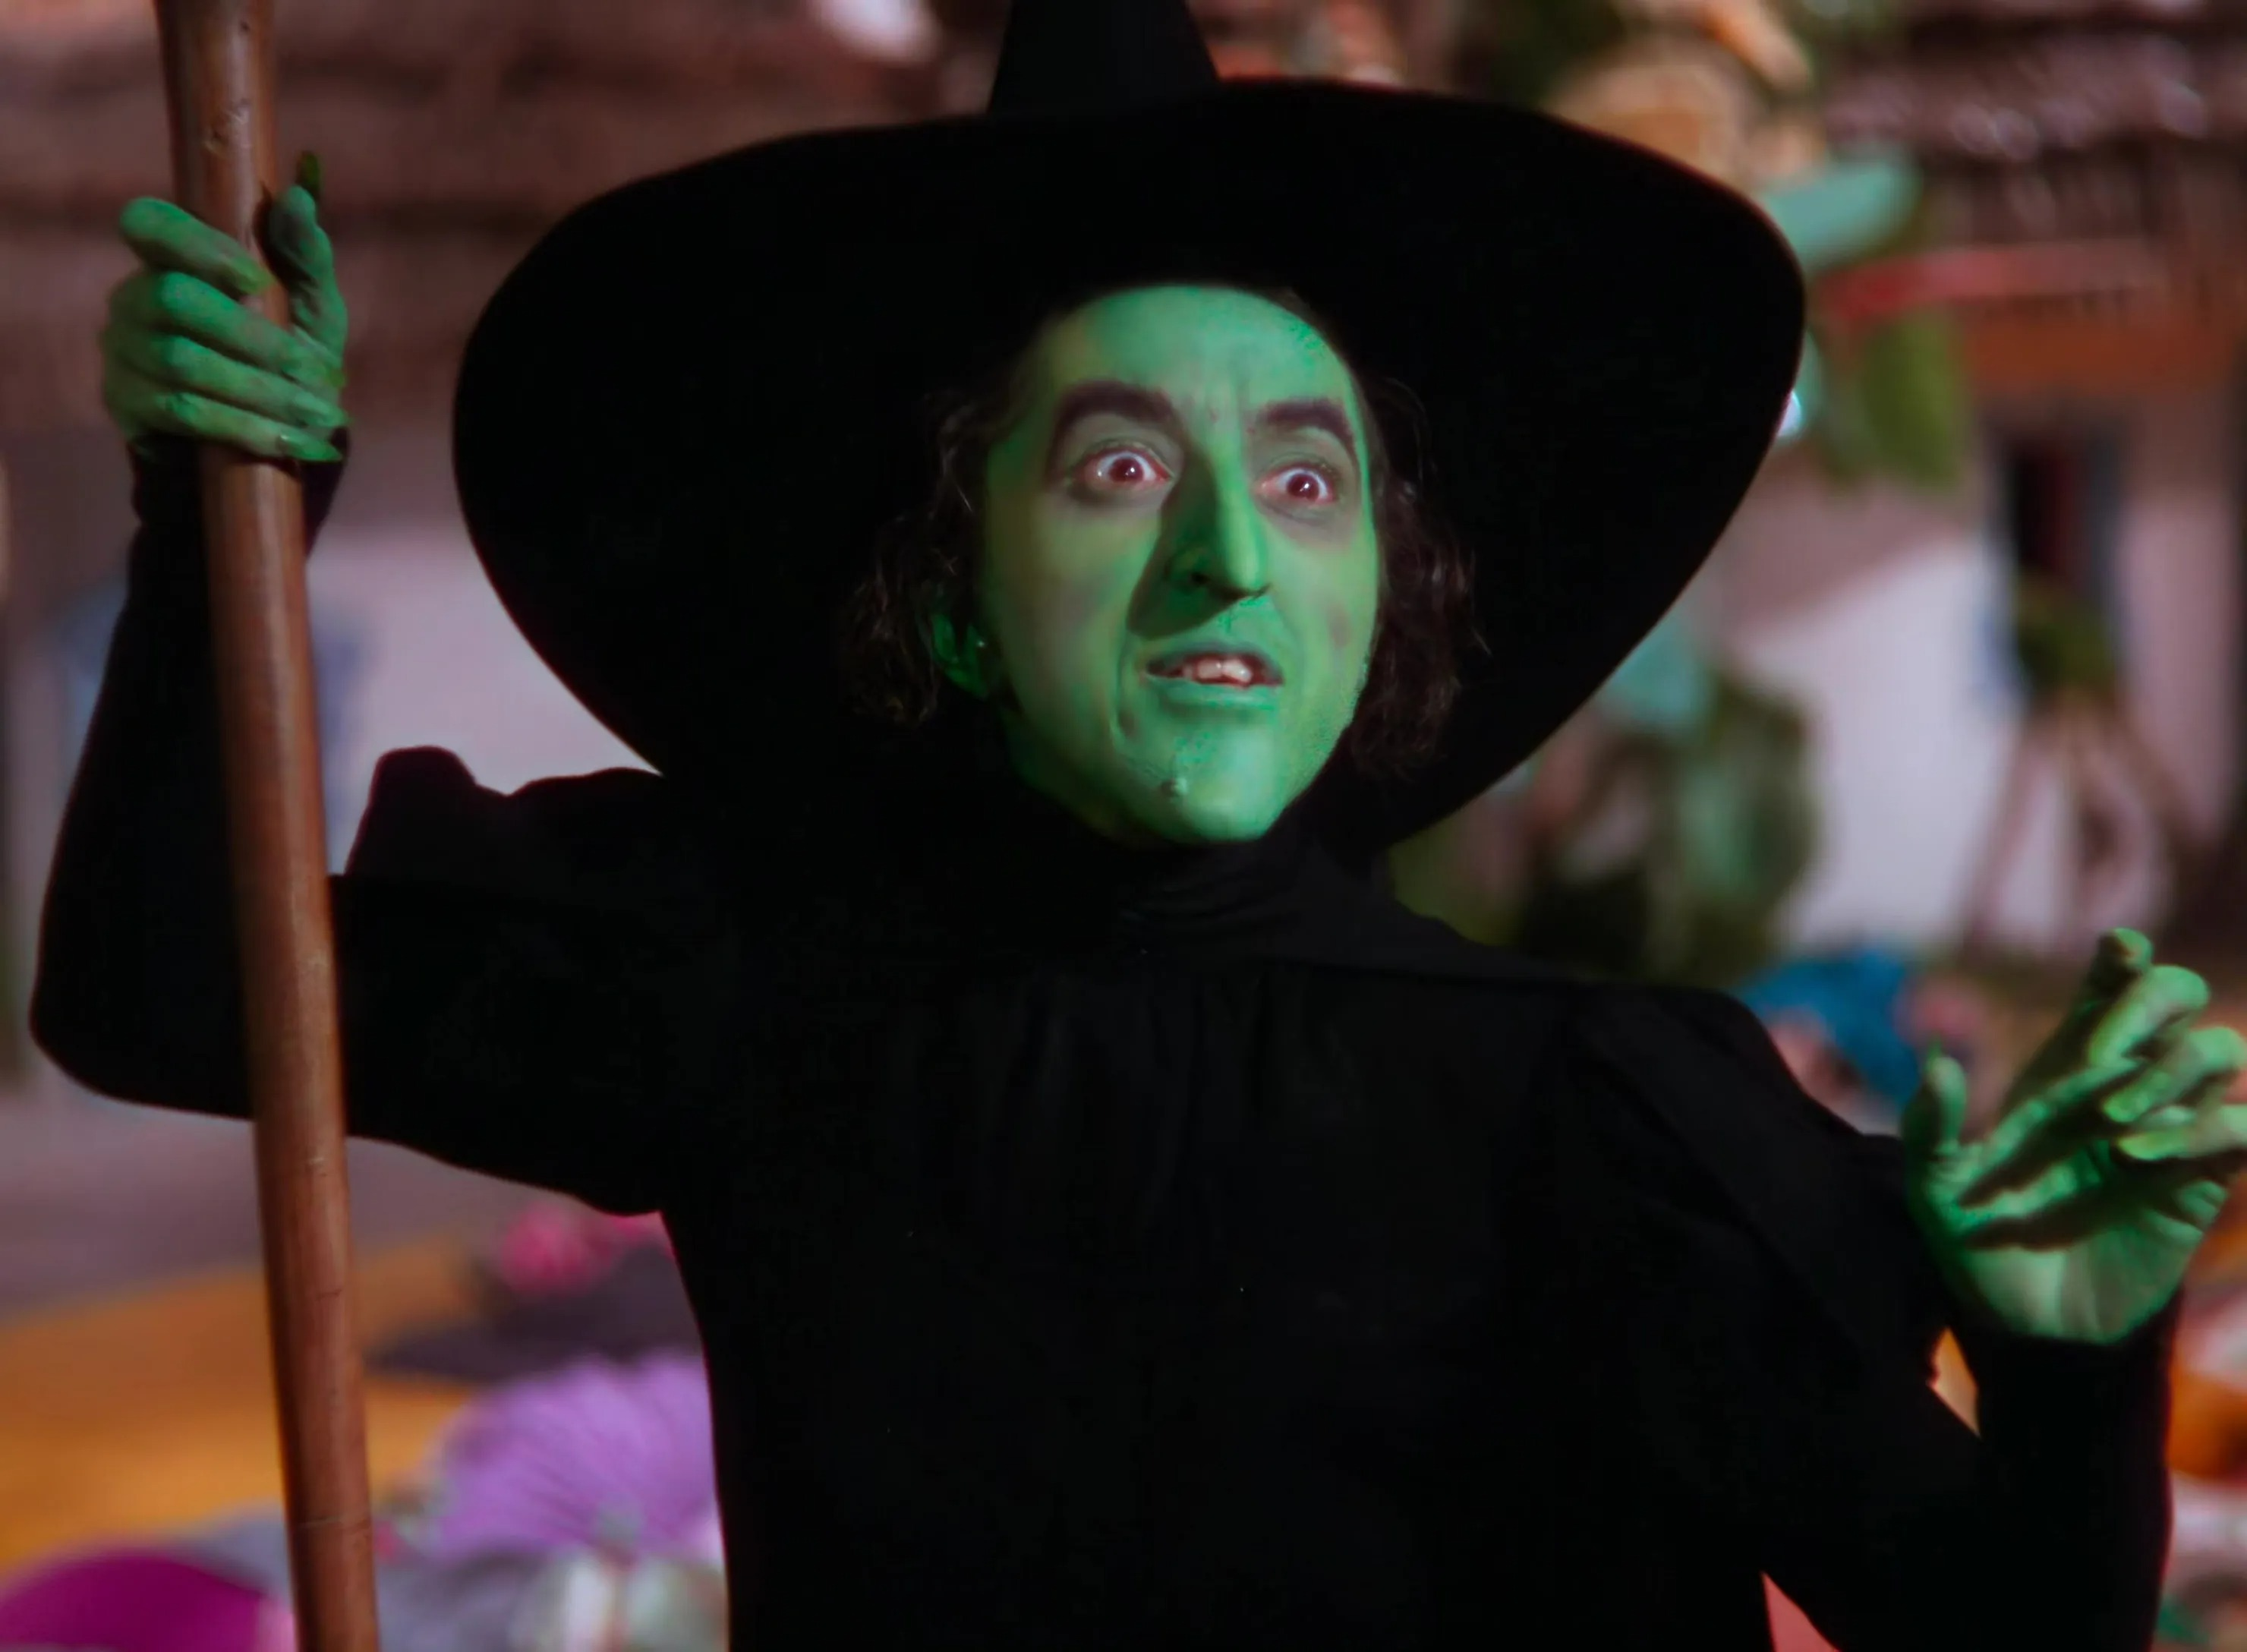 File:Movie Wicked Witch.JPG